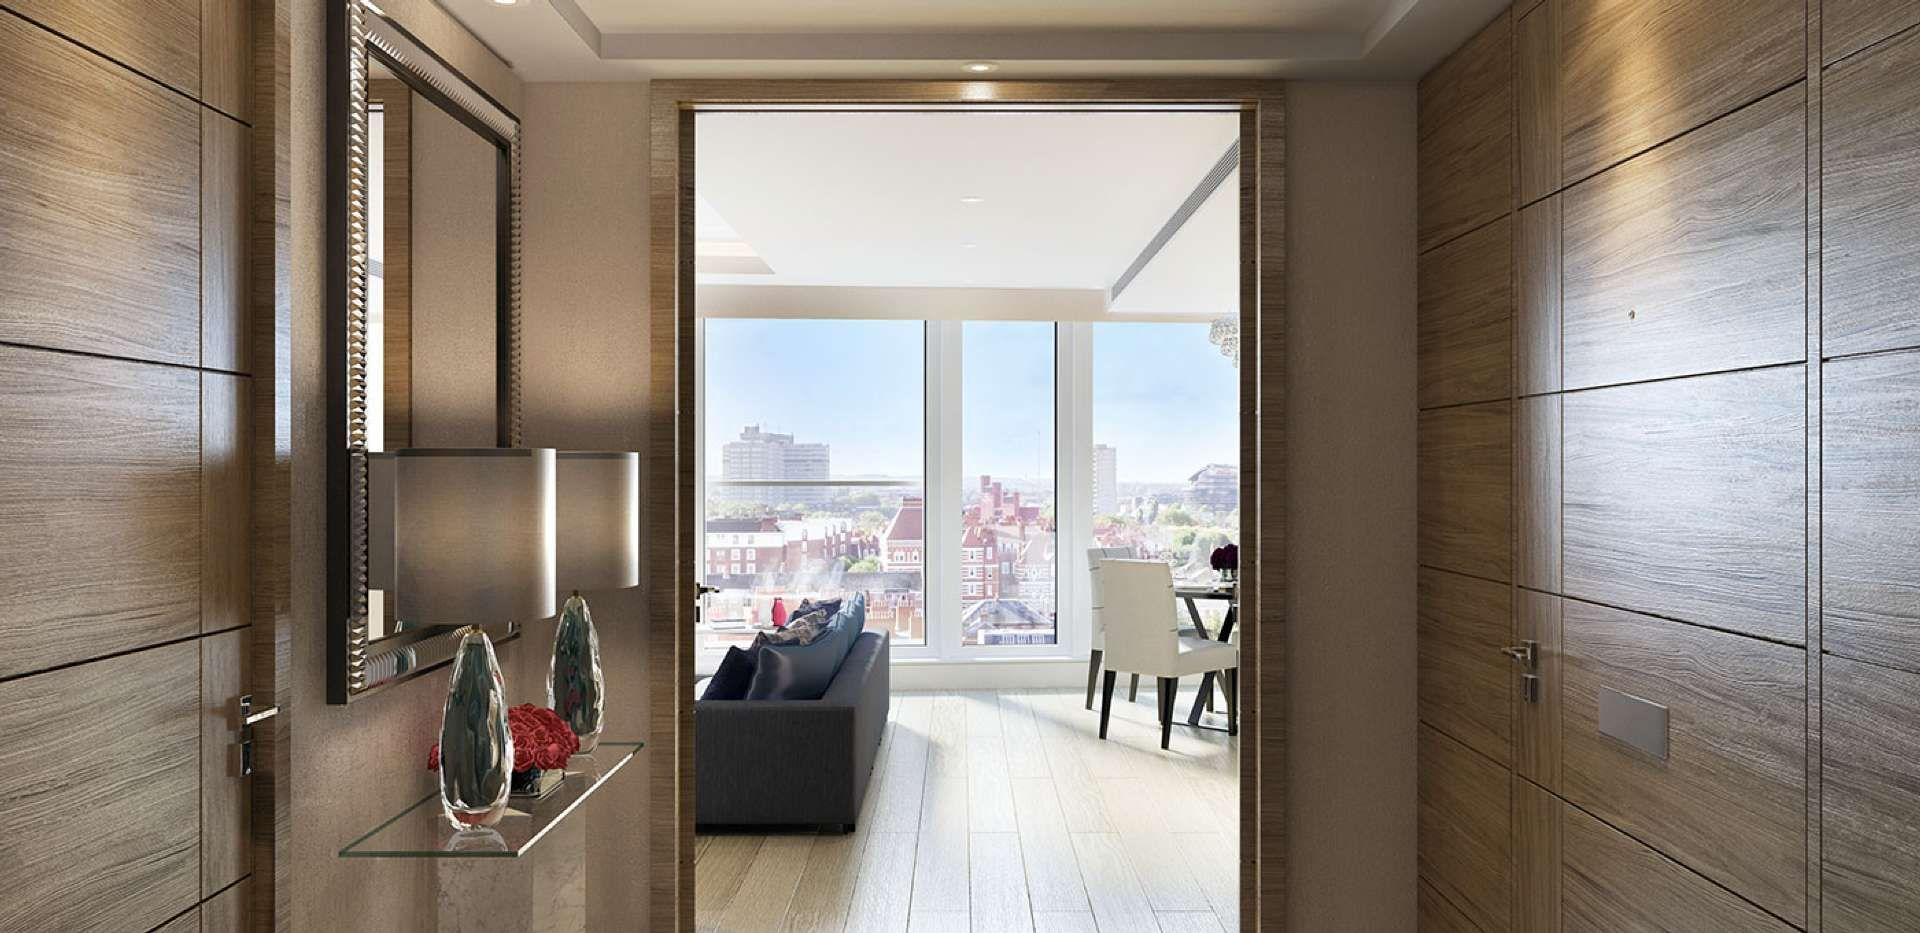 Superbe St Edward, 375 Kensington High Street, Benson House, Apartment Hallway, CGI,